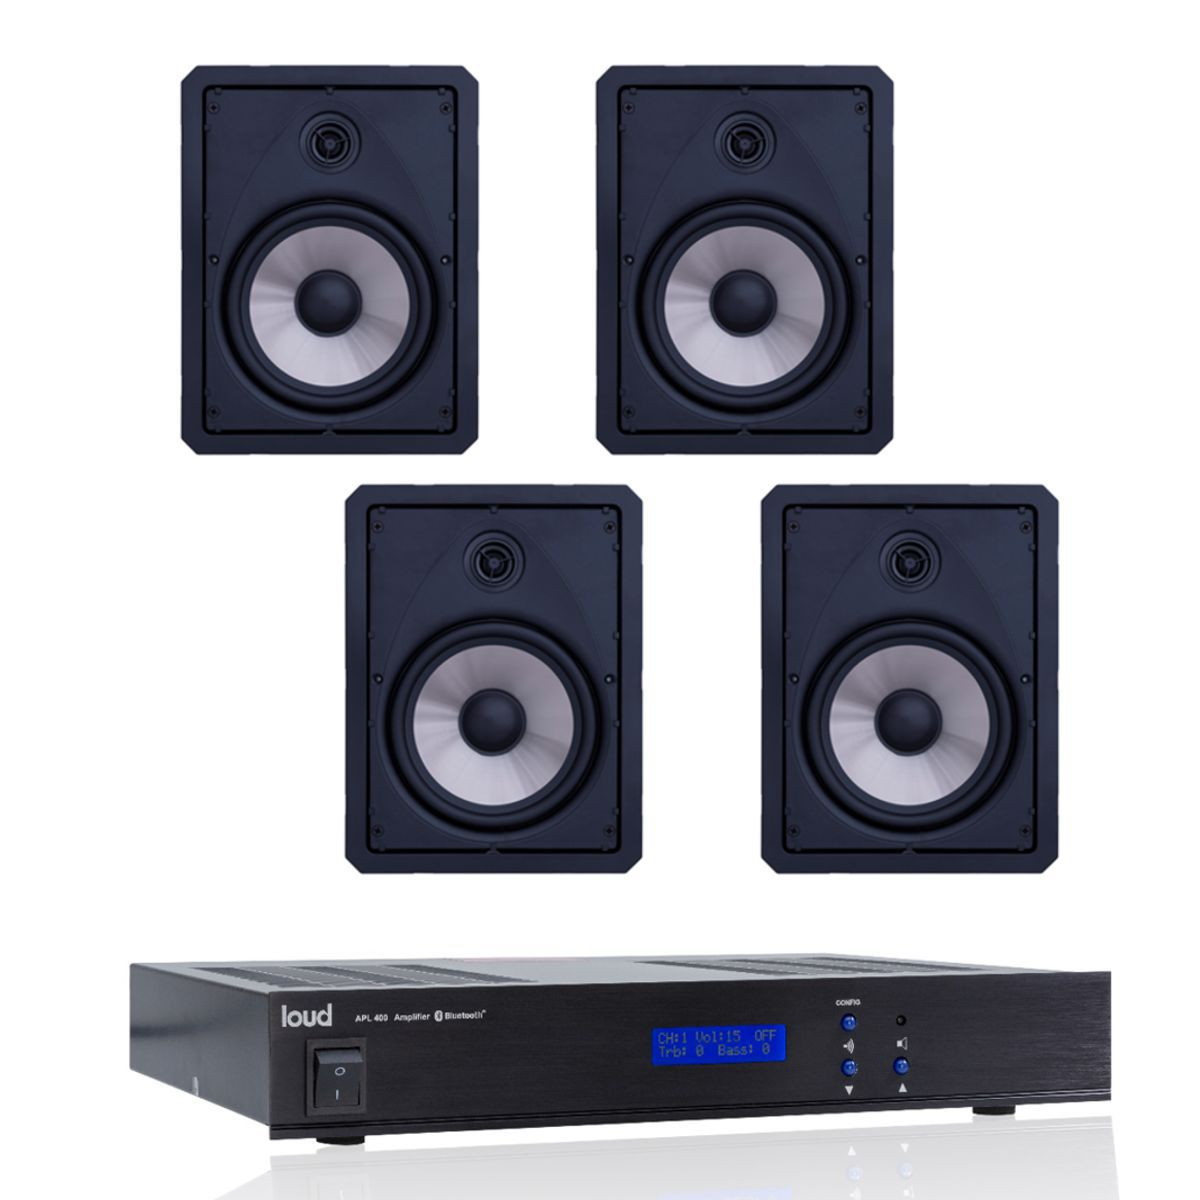 Kit Som Ambiente Amplificador Streaming Bluetooth APL-400 BT + 4 Caixas de Embutir LR6-120 BL Loud